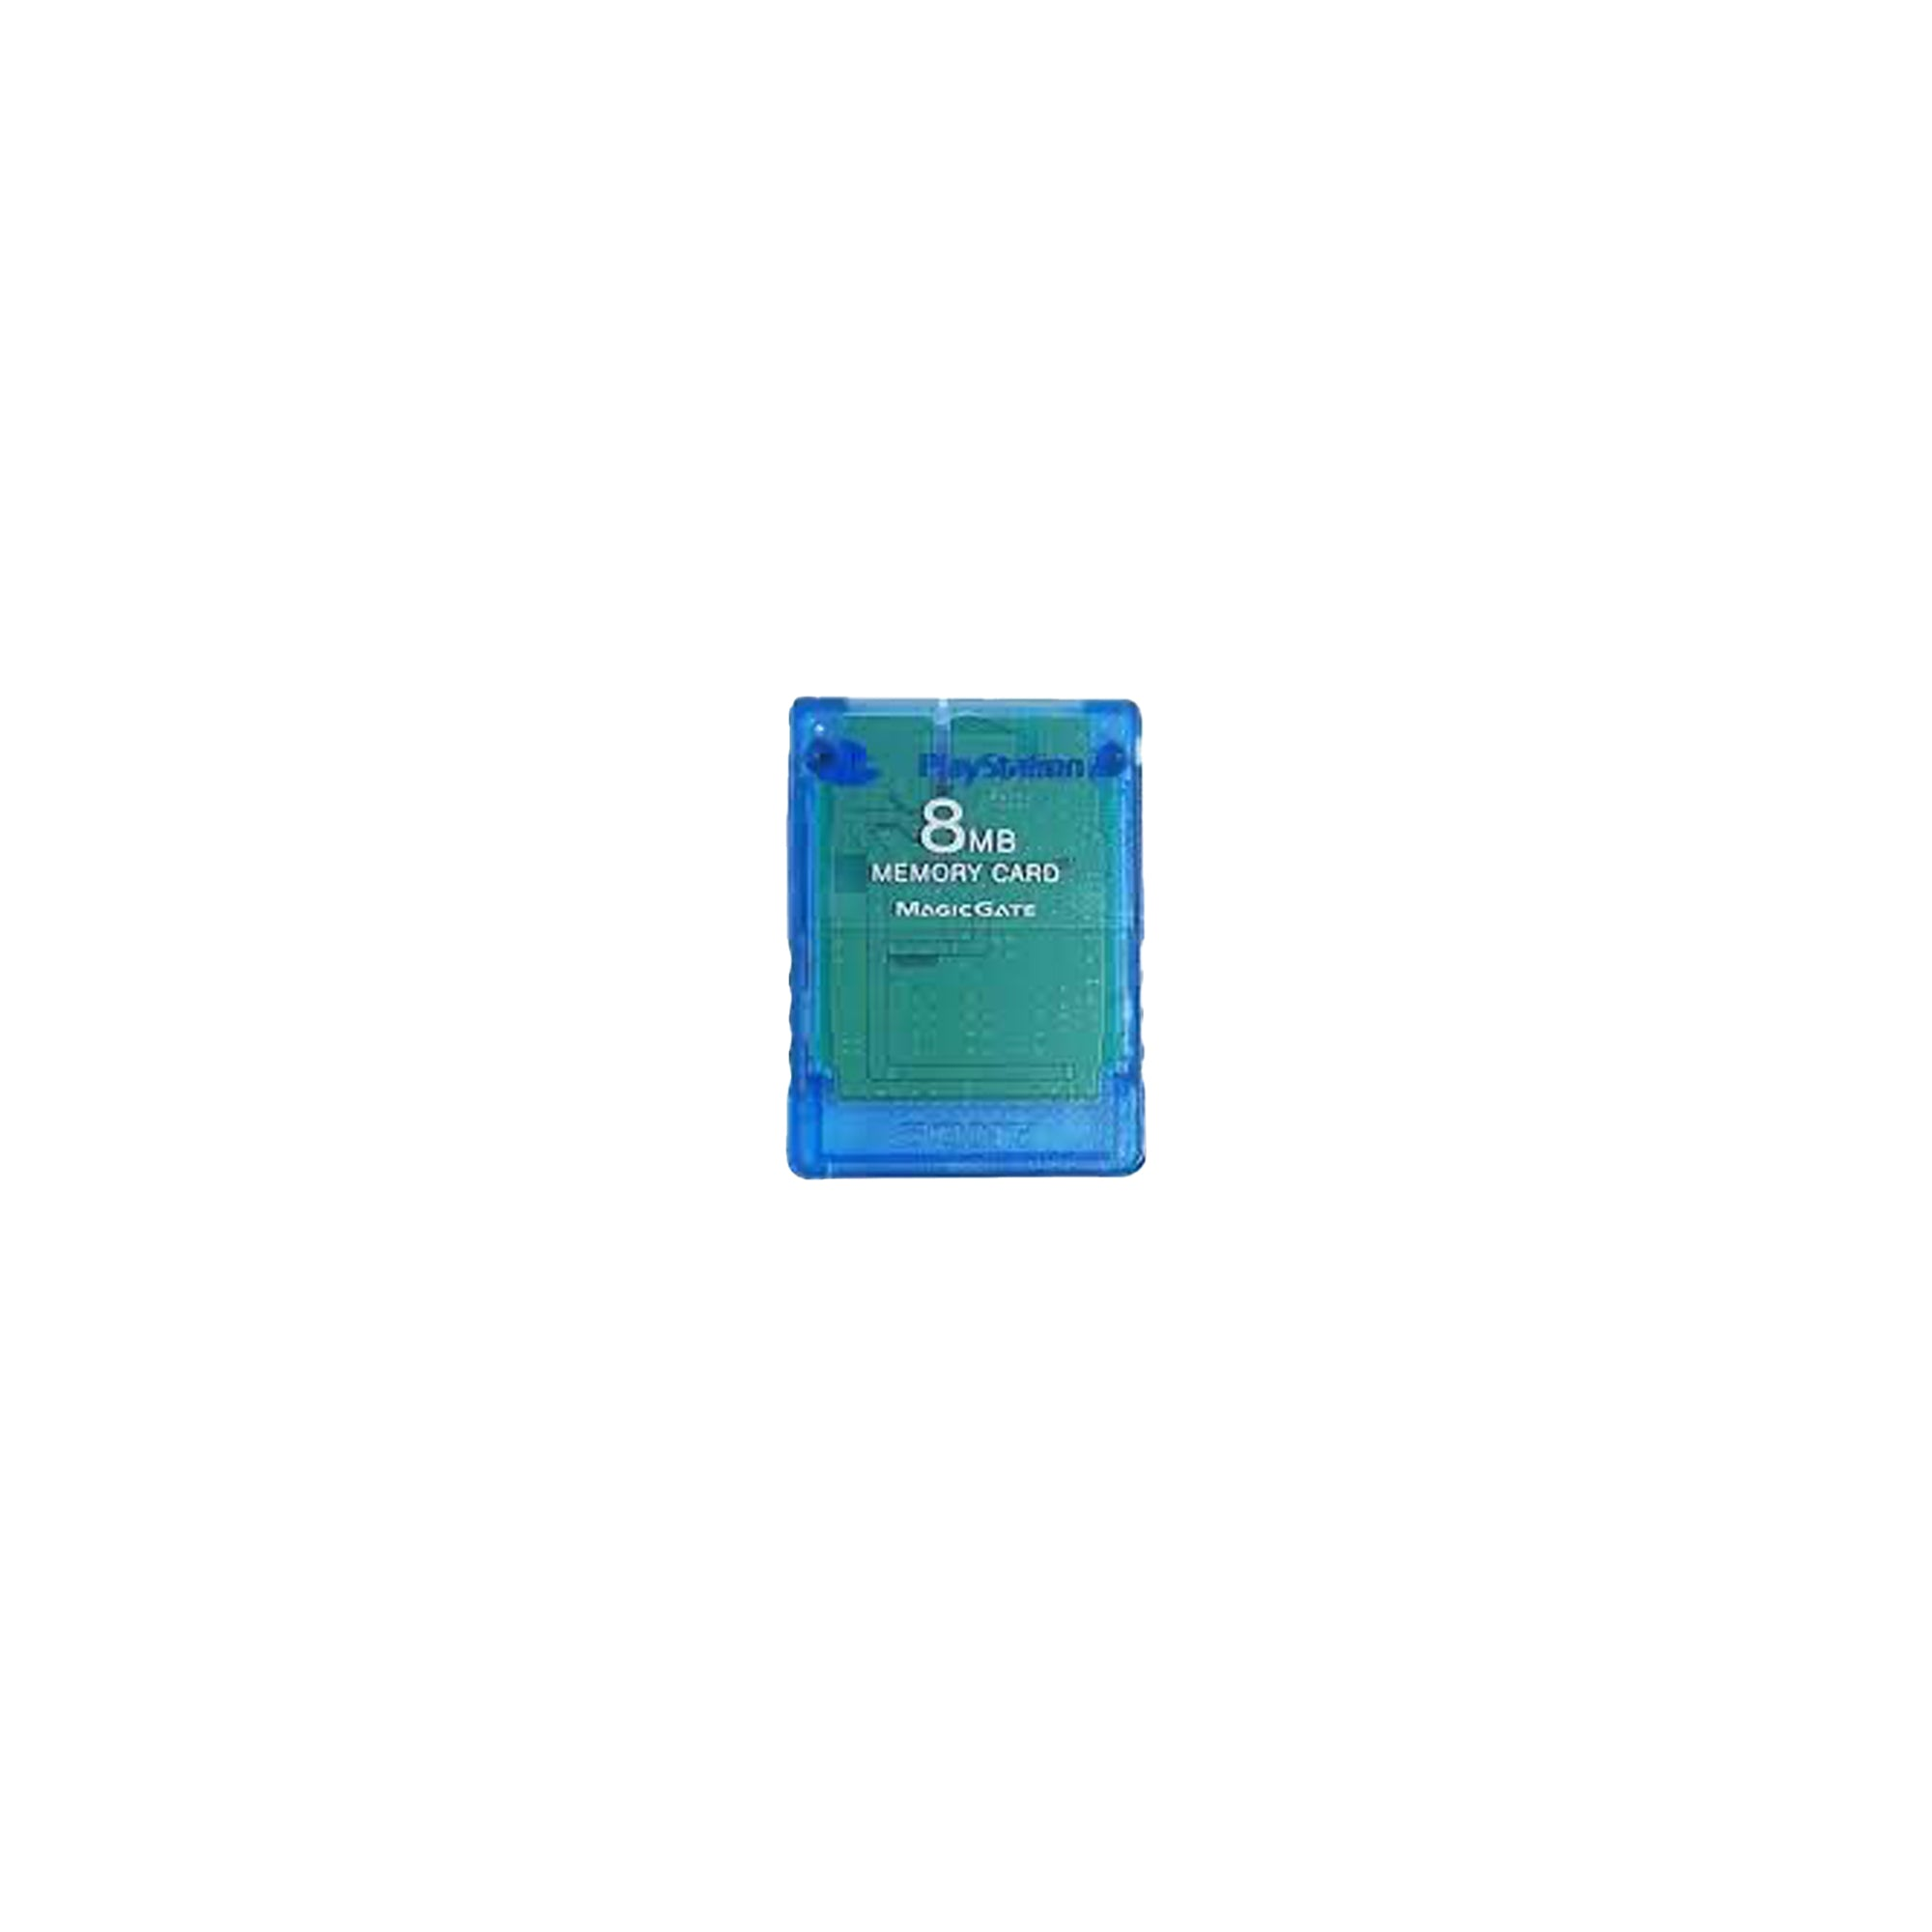 miniature 13 - Sony Playstation 2 Official Memory Card 8MB OEM PS2 Multiple Colors